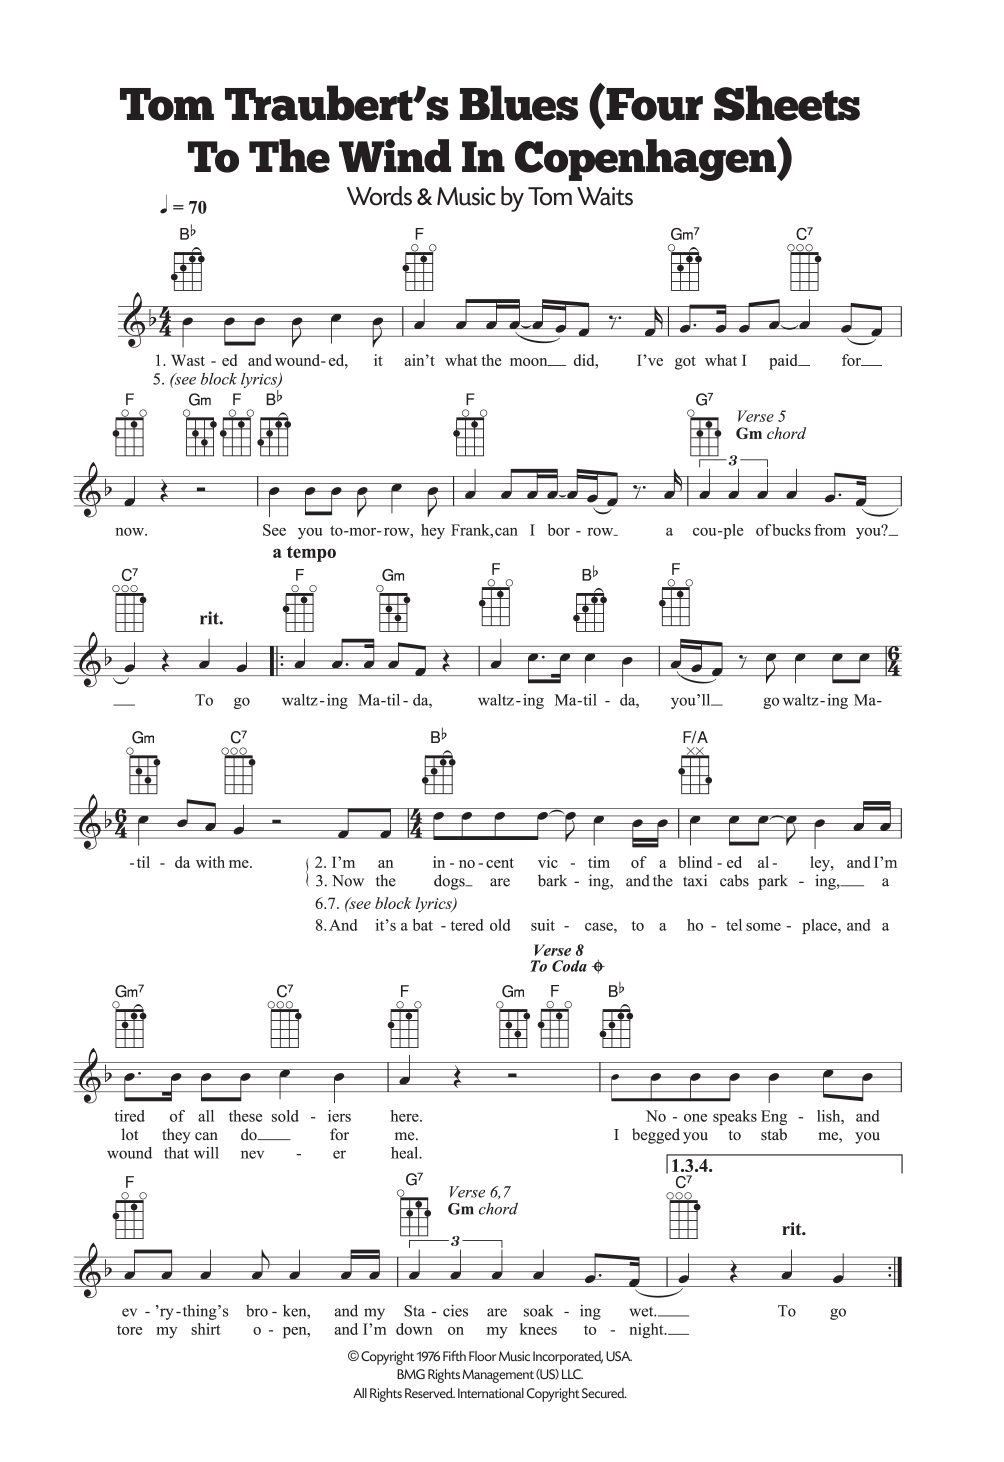 Tom Traubert's Blues (Four Sheets To The Wind In Copenhagen) Sheet Music